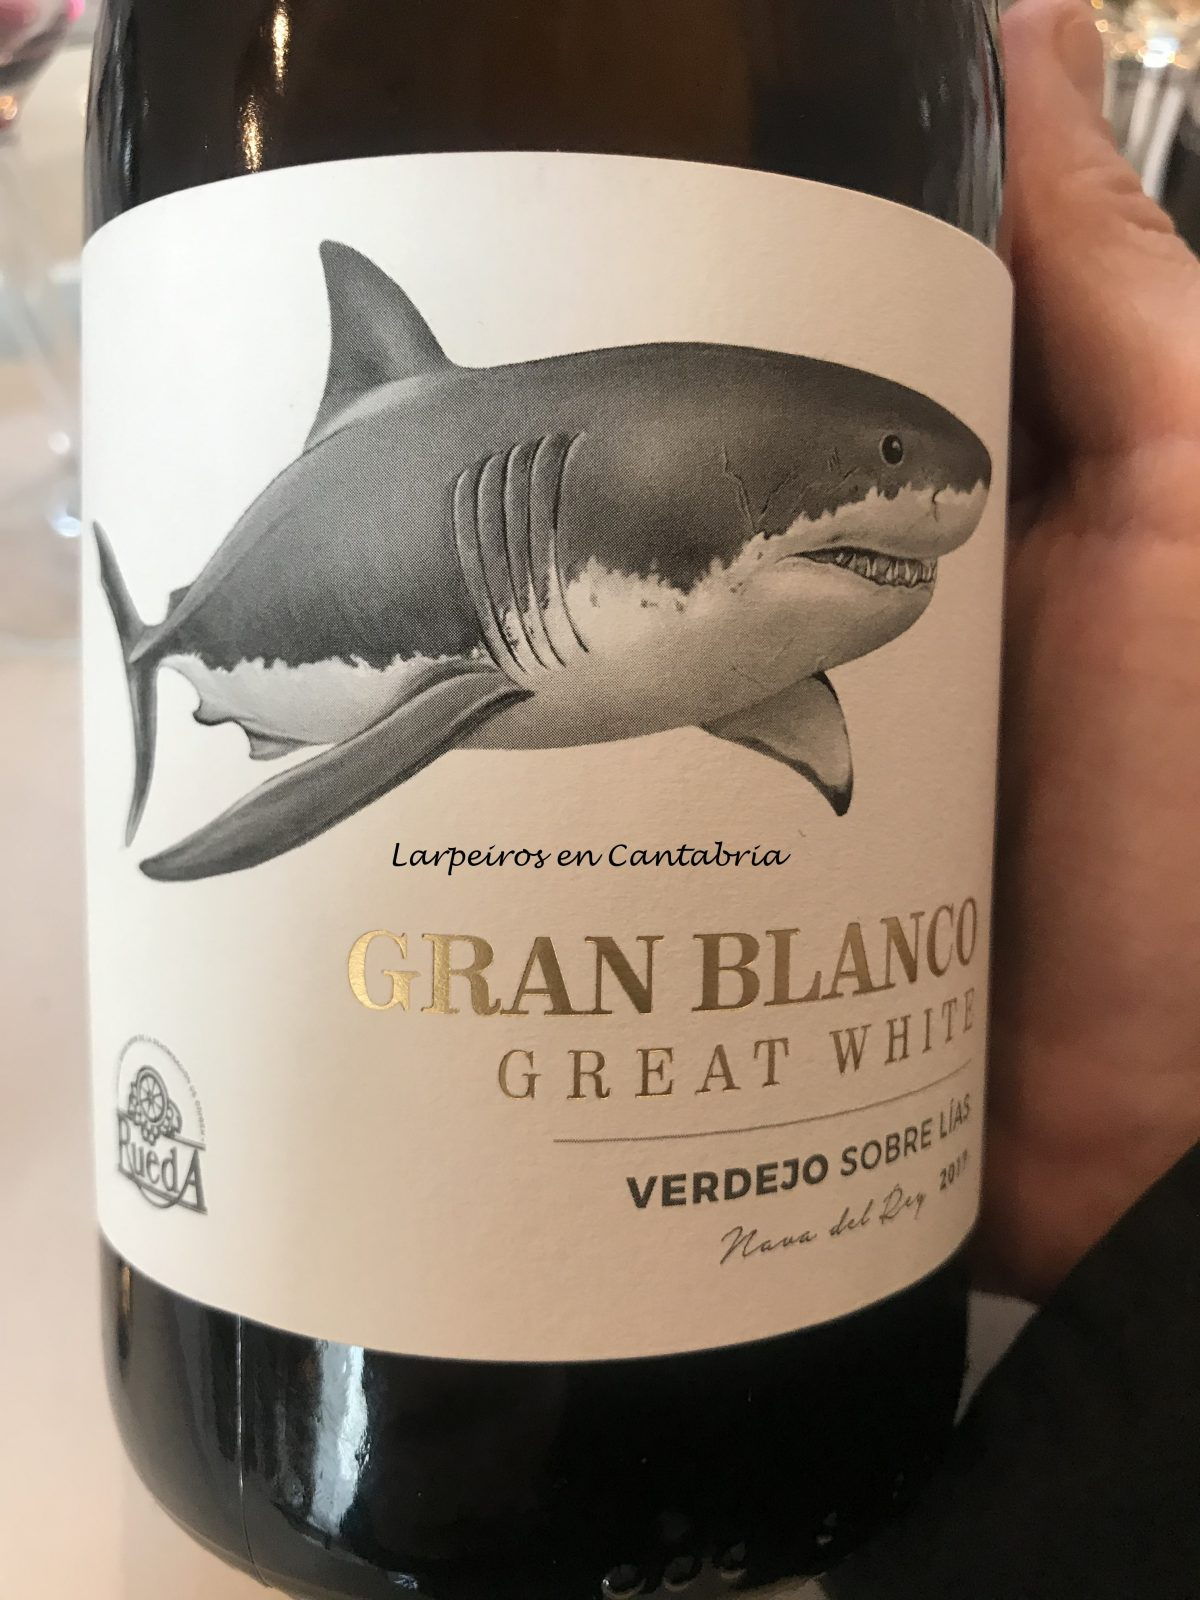 Vino Blanco Gran Blanco (Great White) 2017